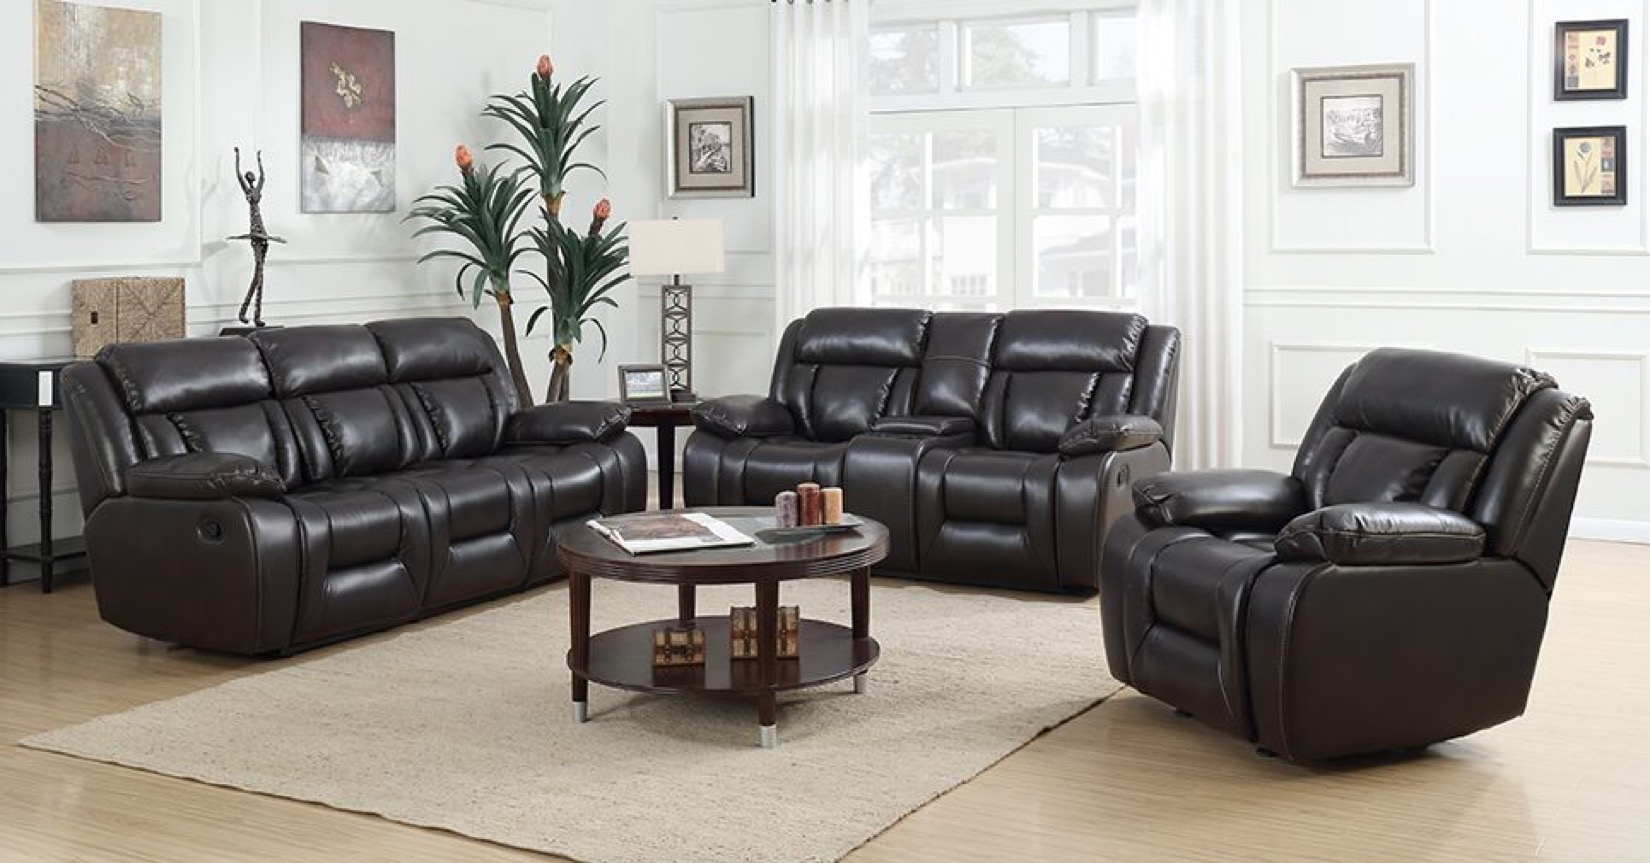 Espresso color of Primo International sectional with Mosaic Faux leather reclining sofa